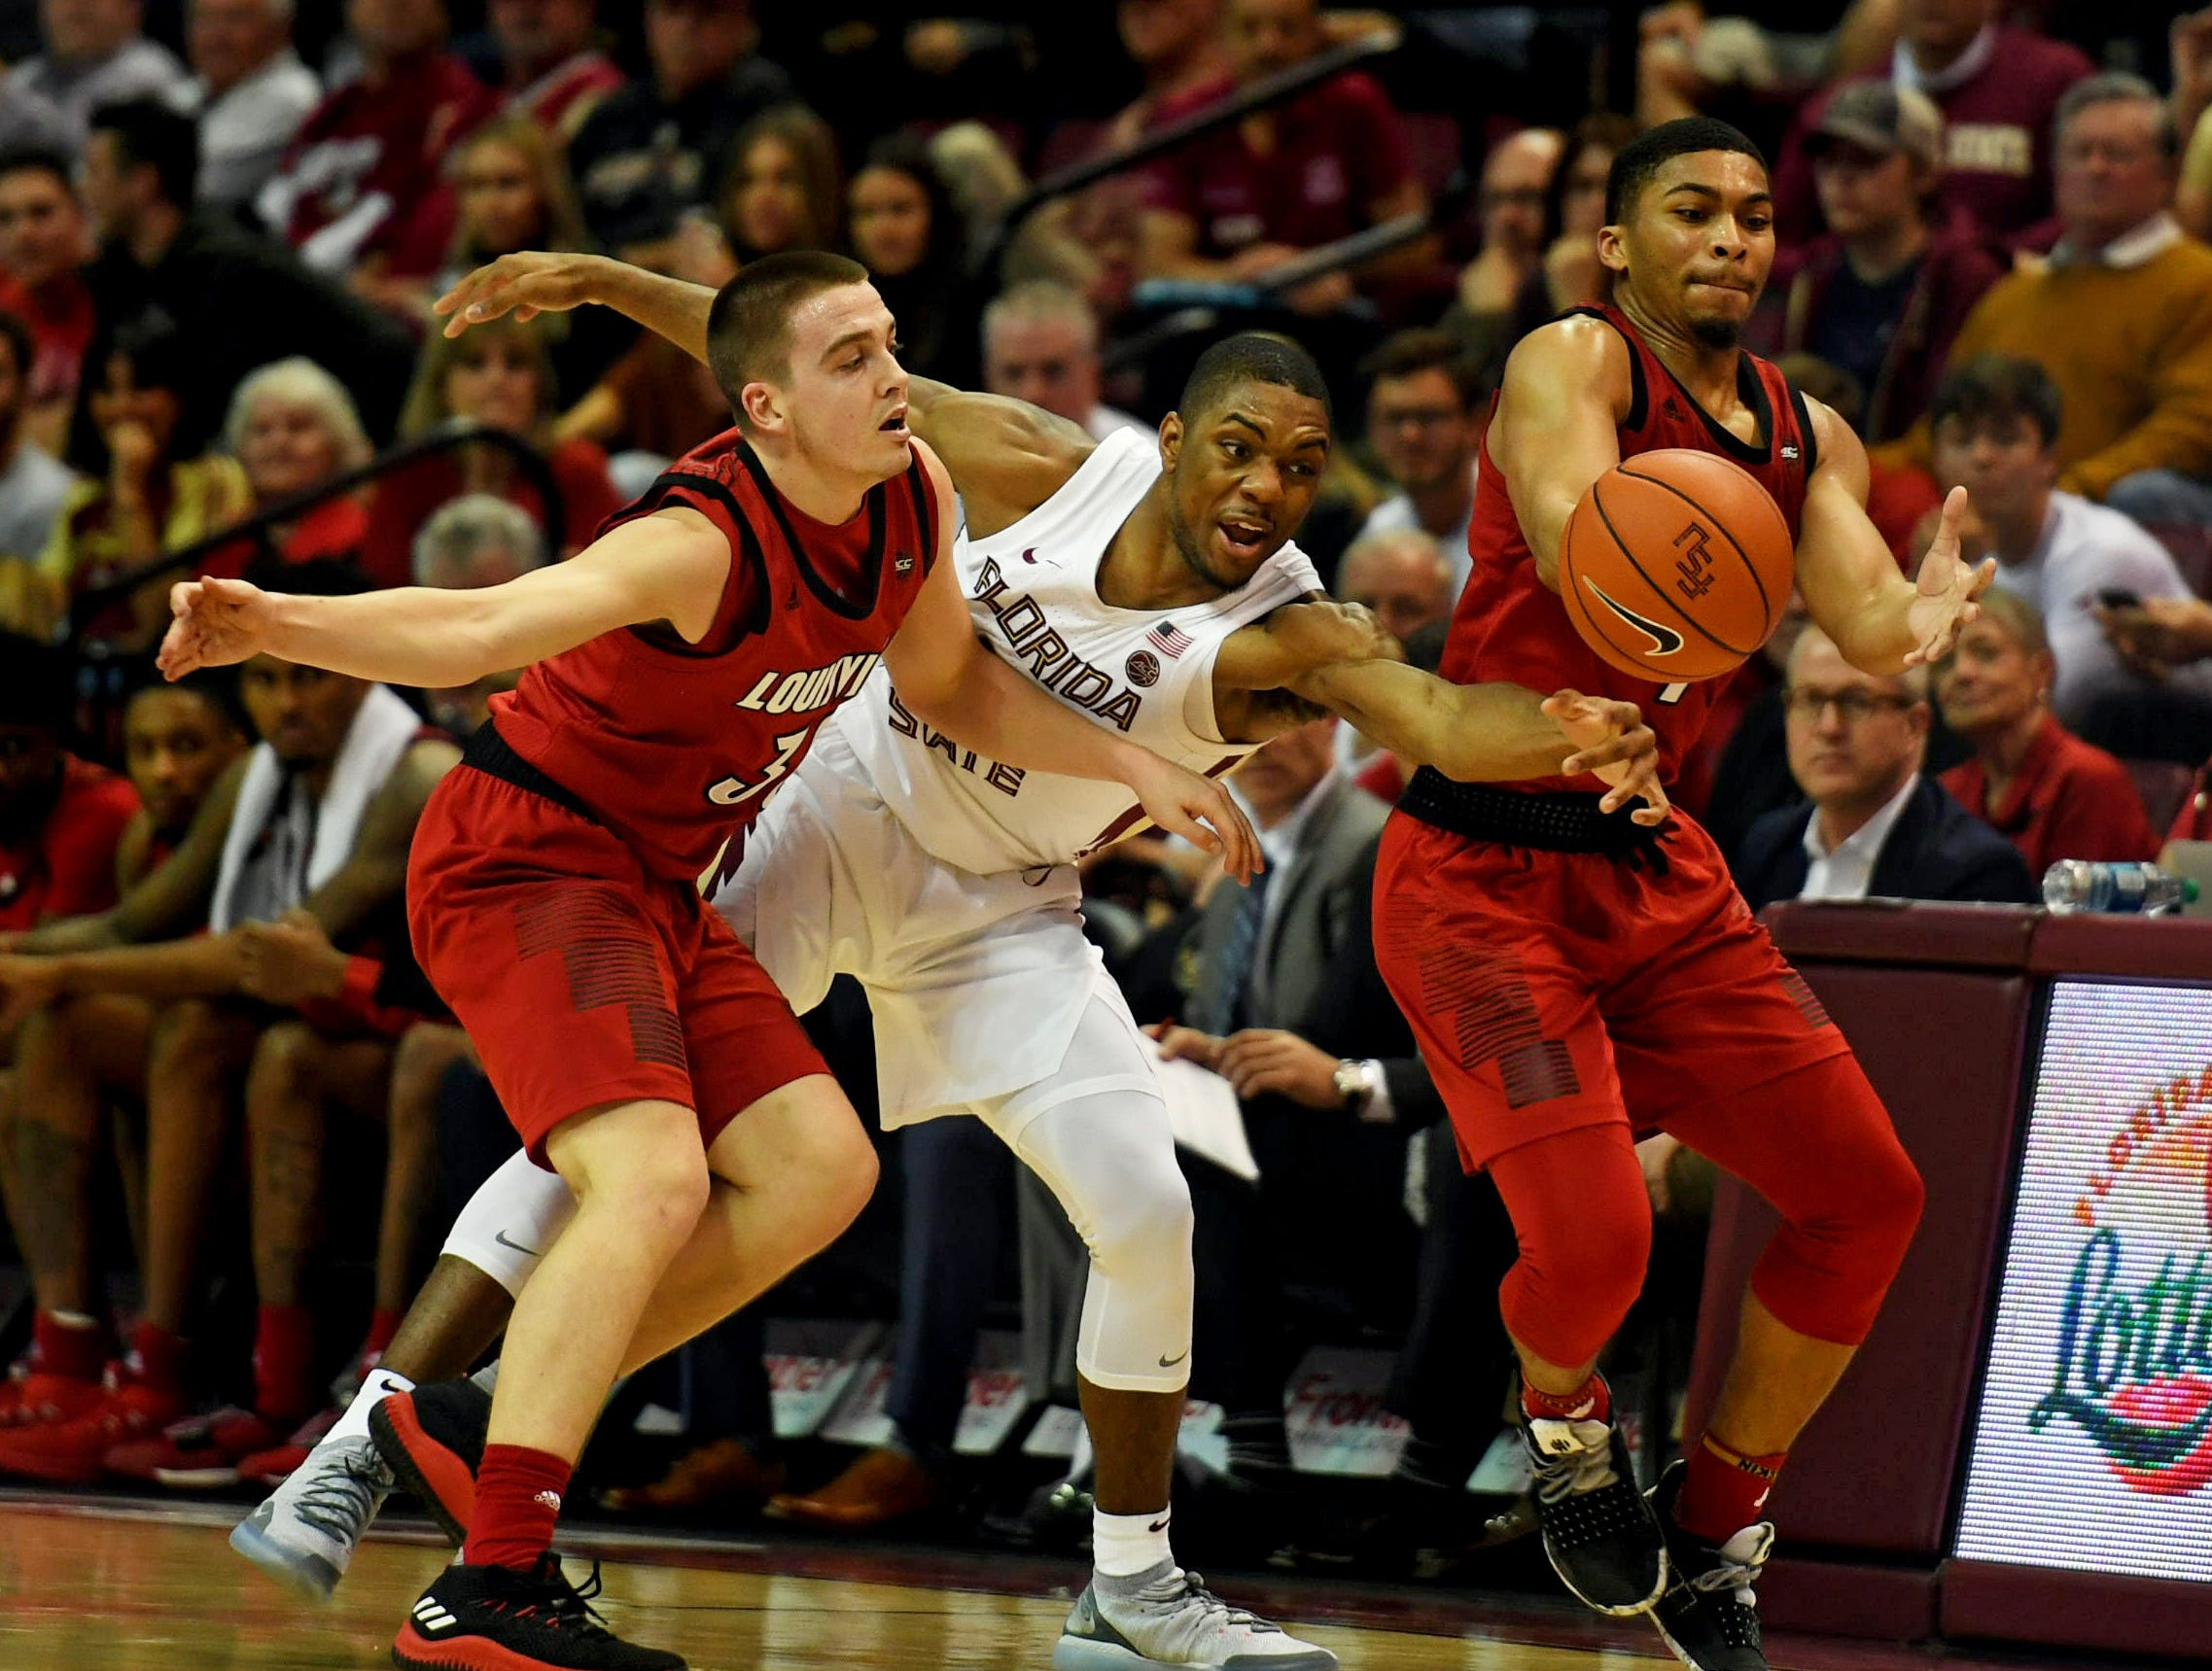 Feb 9, 2019; Tallahassee, FL, USA; Louisville Cardinals guard Ryan McMahon (30) and guard Christen Cunningham (1) have the ball knocked away by Florida State Seminoles guard Trent Forrest (3) during the second half at Donald L. Tucker Center. Mandatory Credit: Melina Myers-USA TODAY Sports